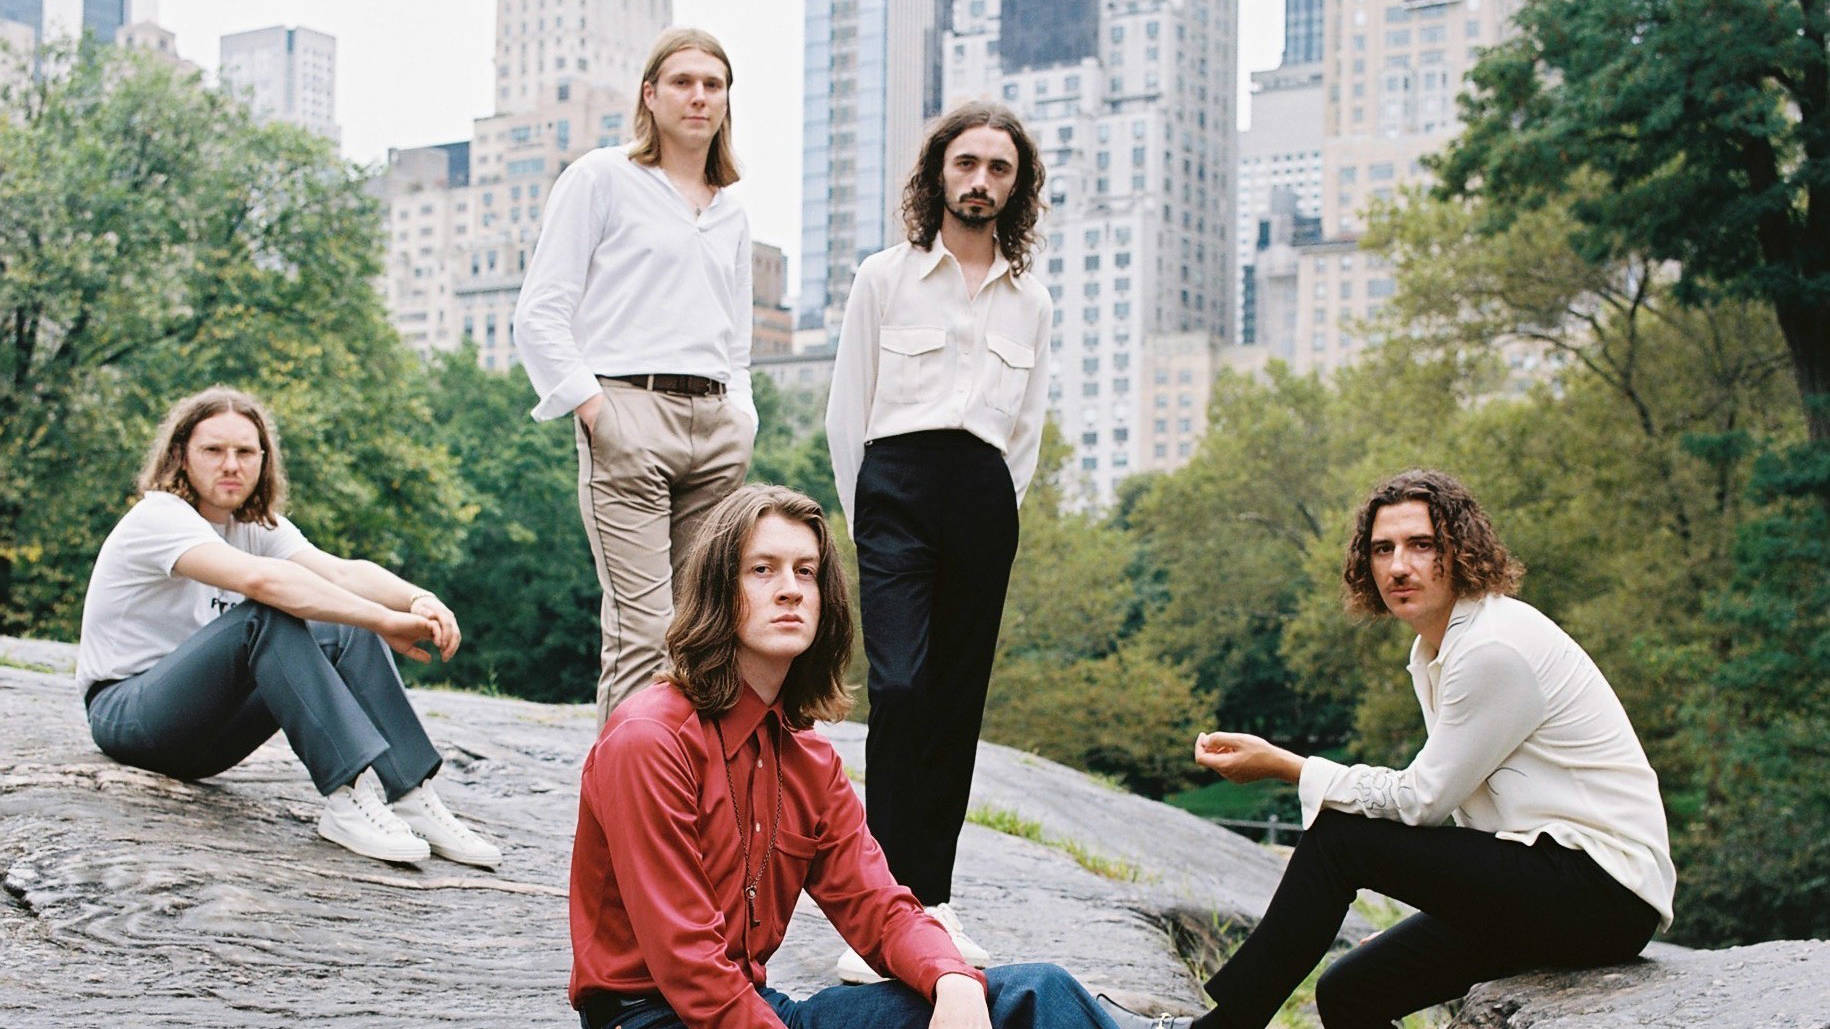 Blossoms announce new album Foolish Loving Spaces and 2020 UK tour